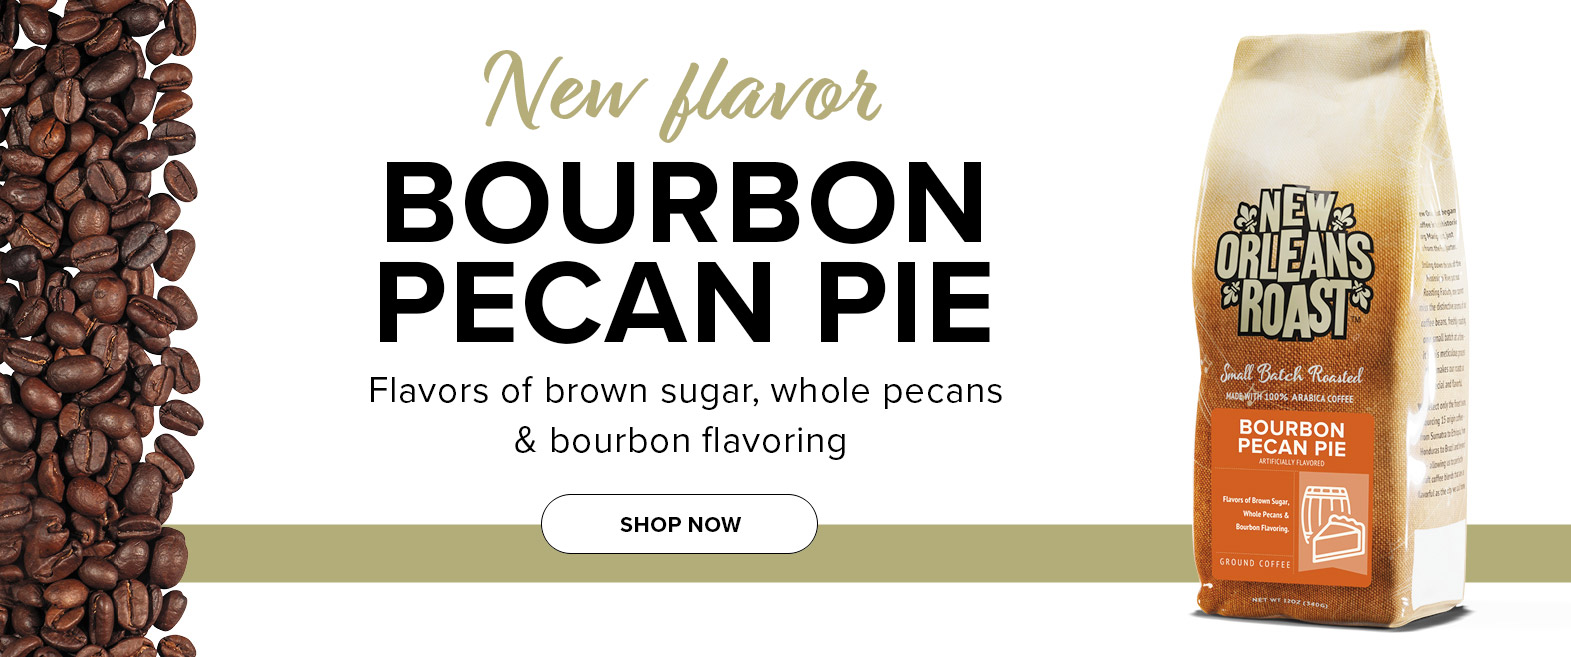 New Flavor.  Bourbon Pecan Pie.  Click to shop online